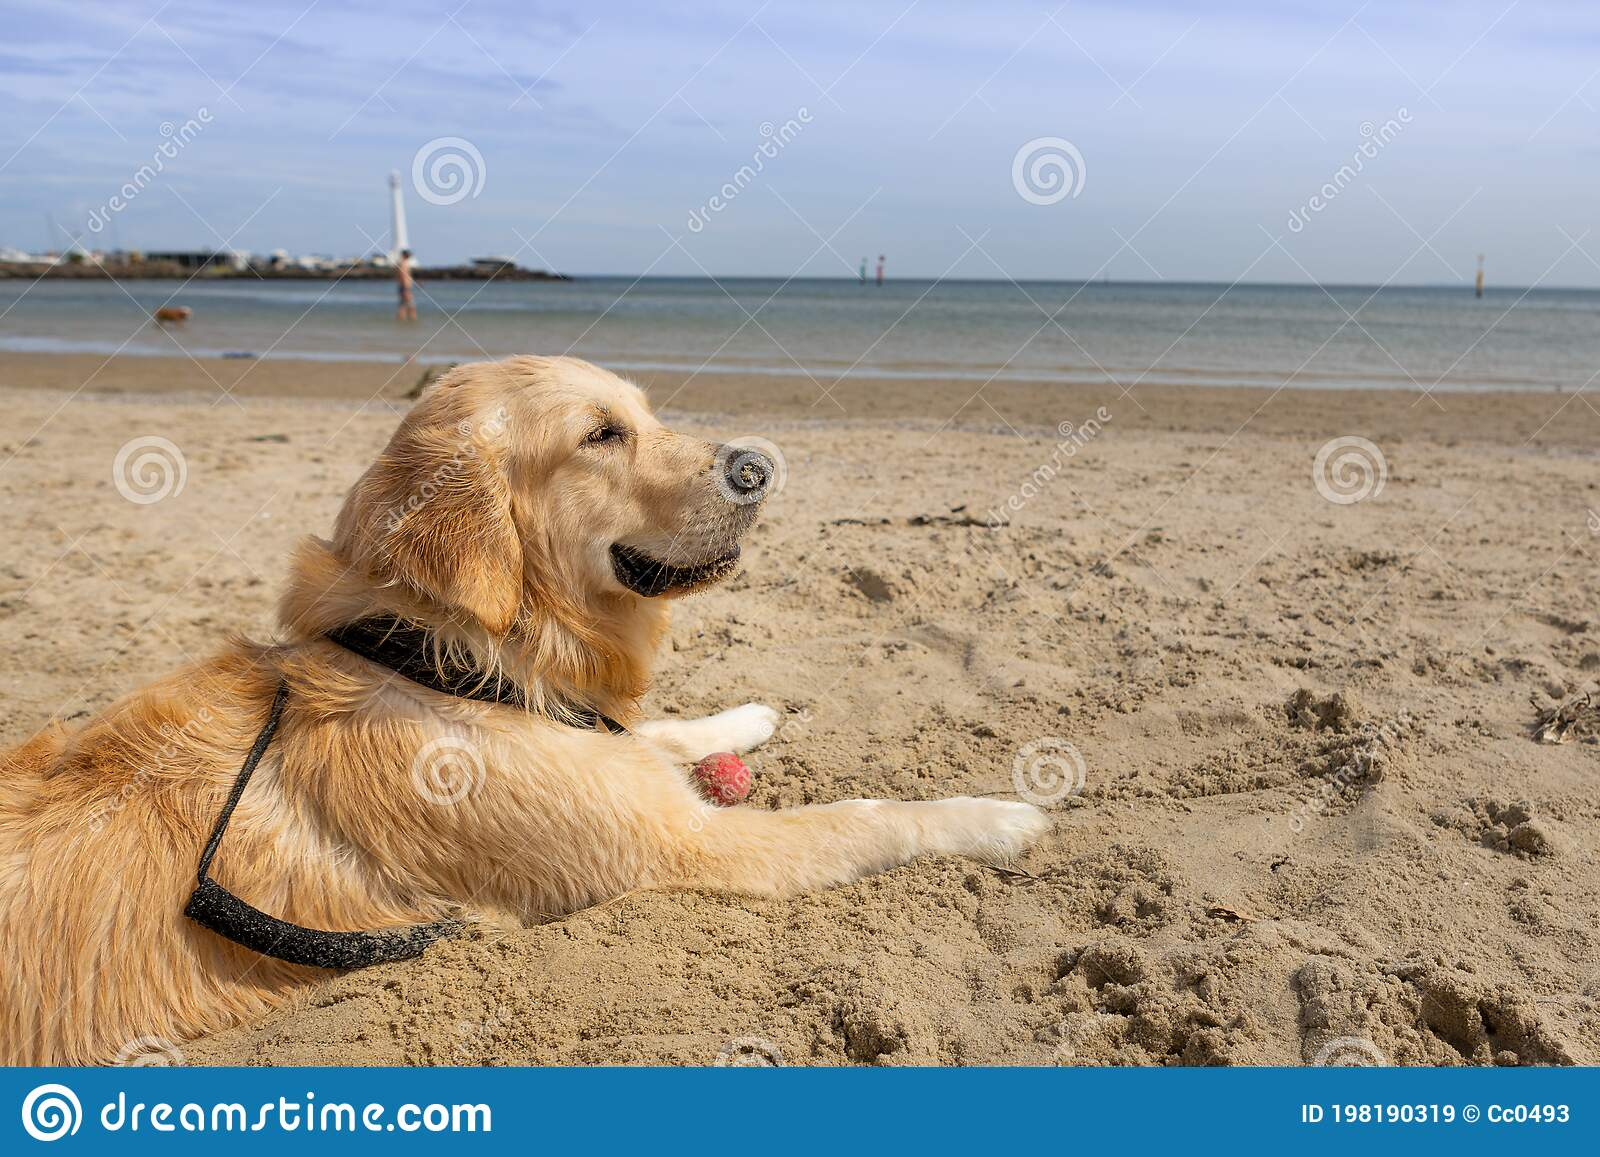 A Golden Retriever Puppy Smiling While Enjoying A Sunny Day At The Beach With A Light House In The Background Stock Image Image Of Healthy Domestic 198190319